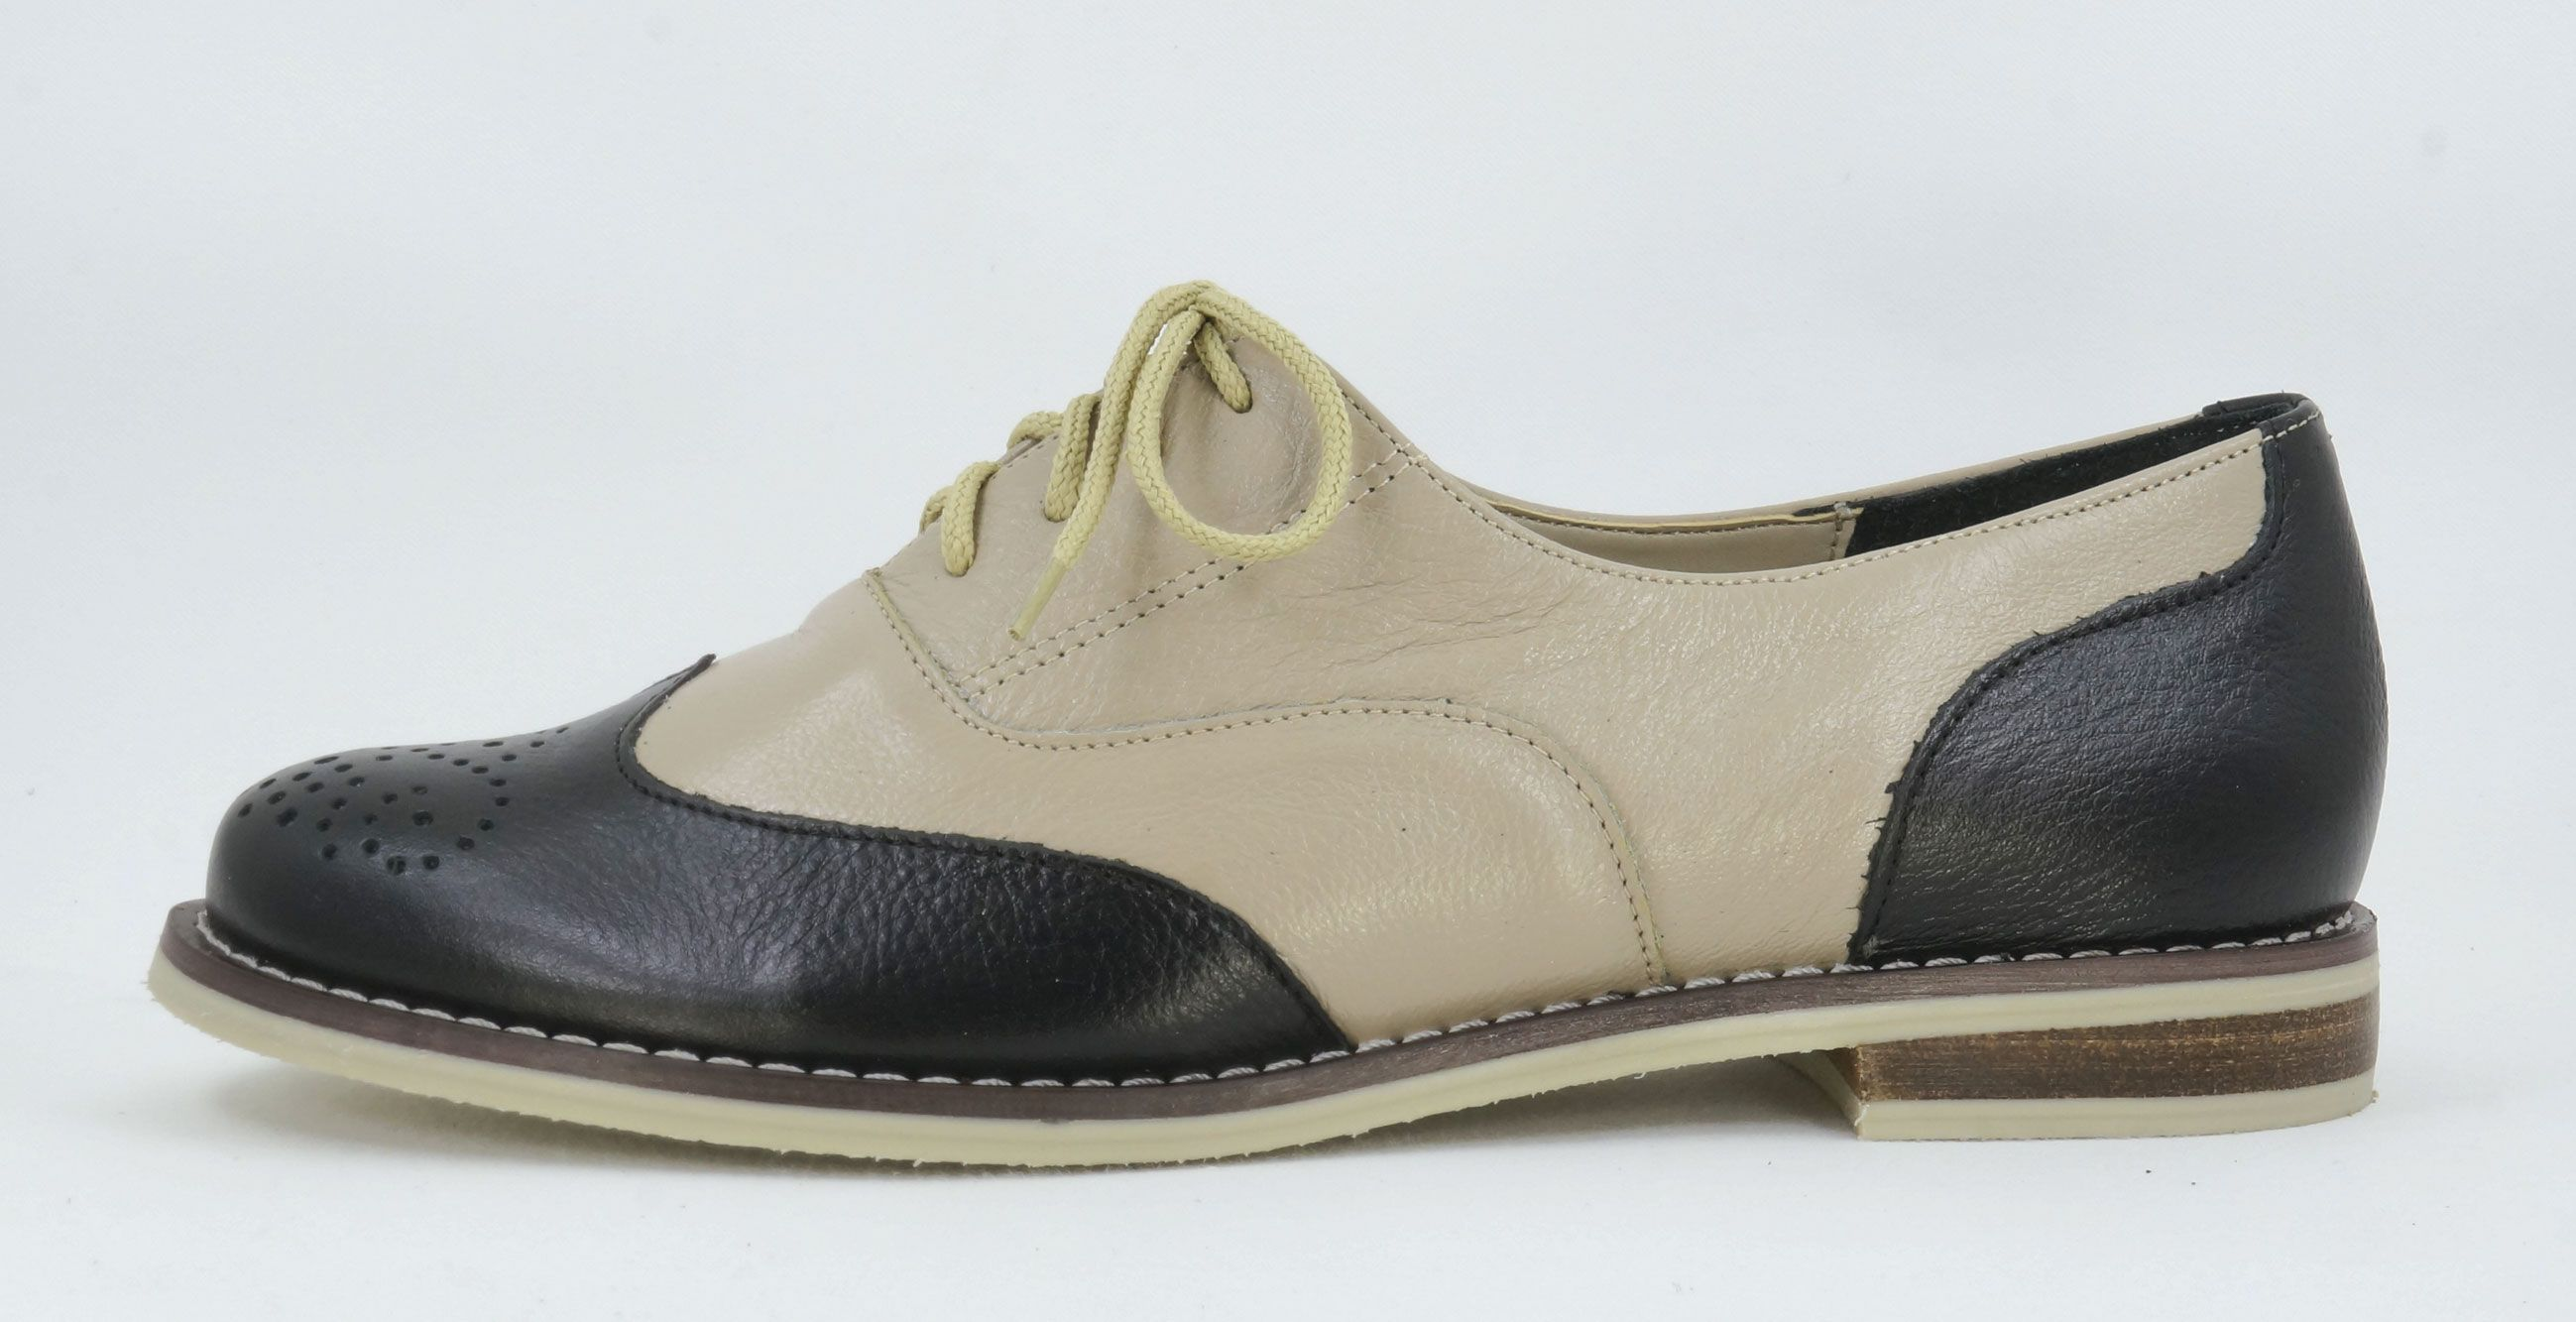 Lena Rezzi Black Taupe Handmade Genuine Leather Brogue Handcrafted In Pietermaritzburg South Africa Code D087 Leather Brogues Leather Shoes Woman Leather